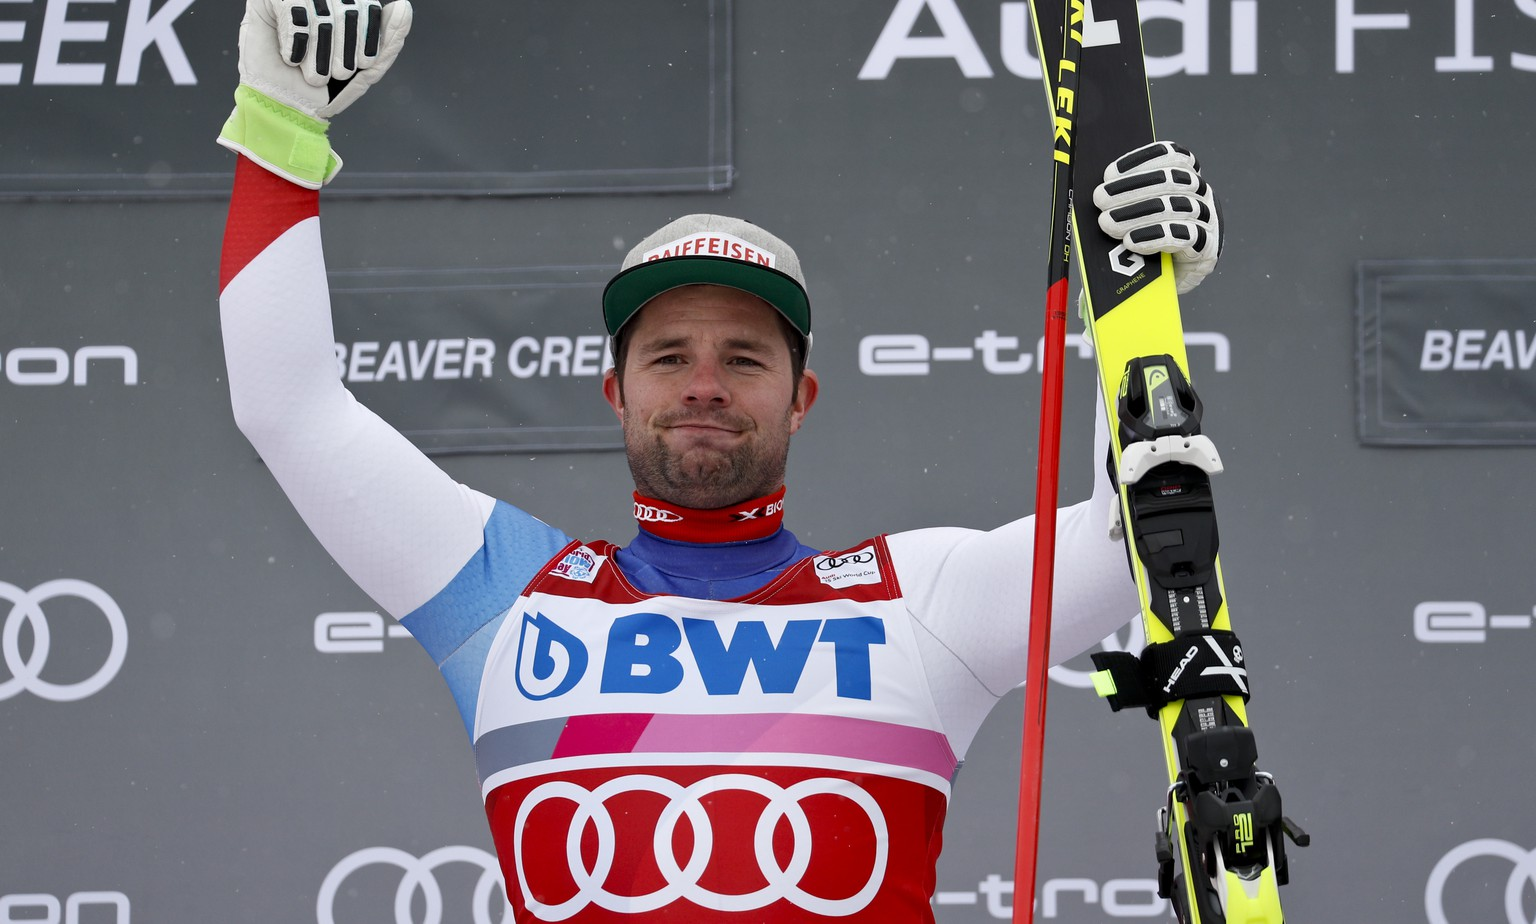 Switzerland's Beat Feuz celebrates after winning the Men's World Cup downhill skiing race Friday, Nov. 30, 2018, in Beaver Creek, Colo. (AP Photo/John Locher)